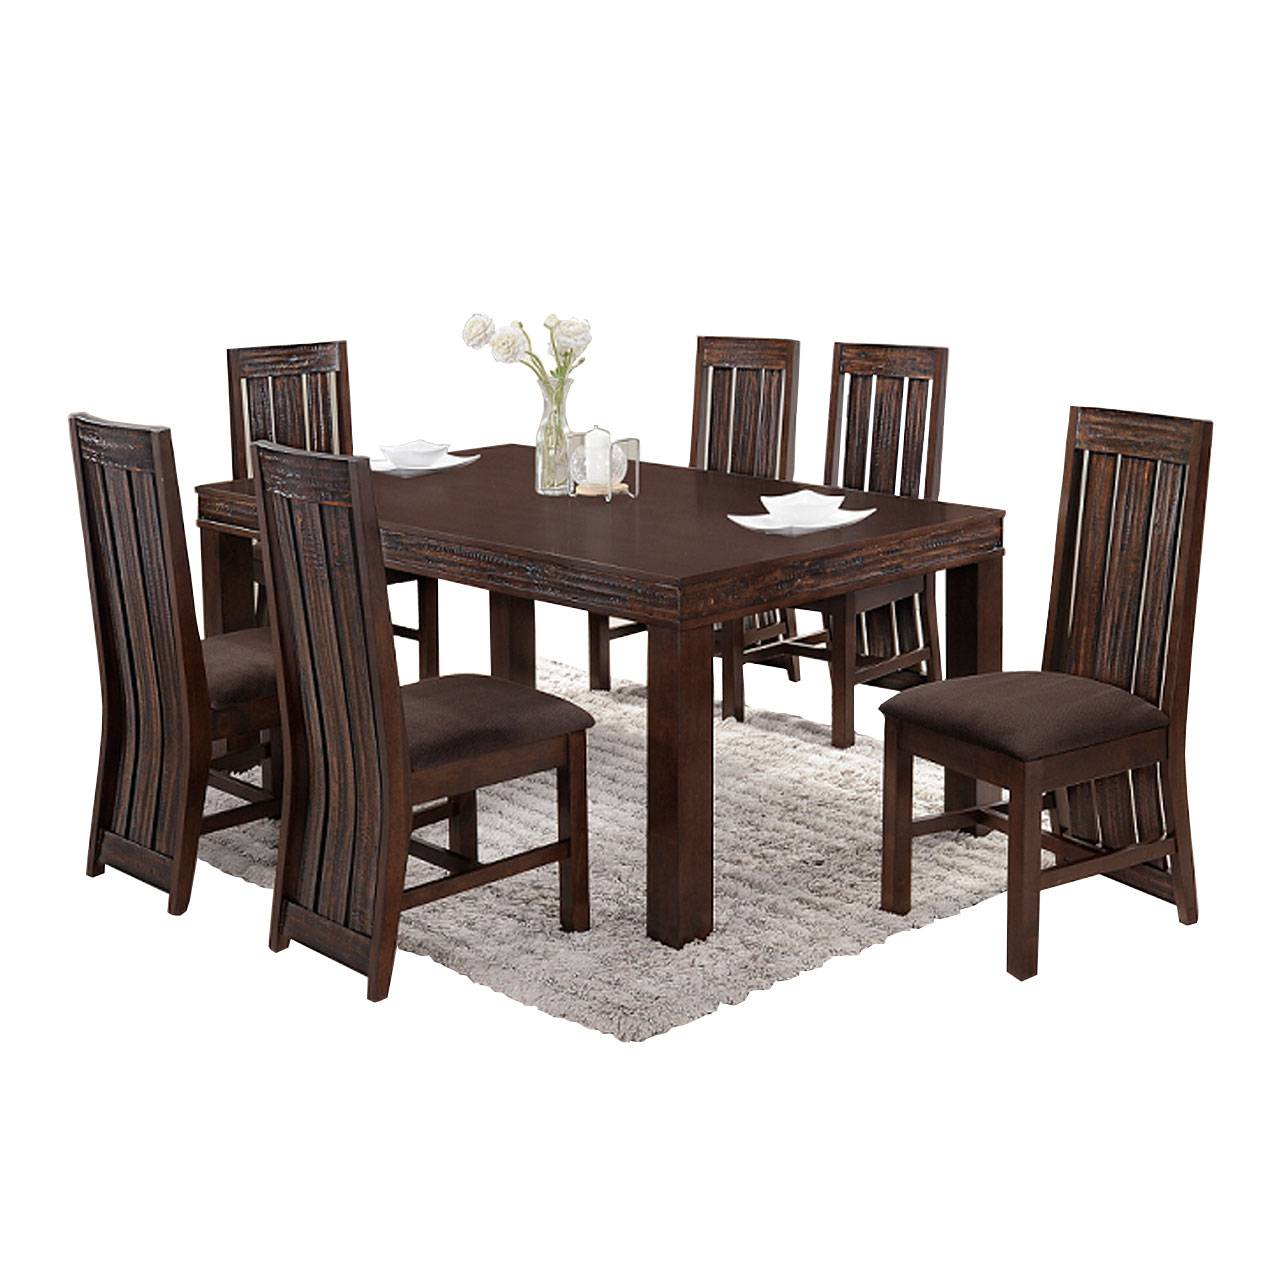 Dillon Dining Set Furniture Store Manila Philippines